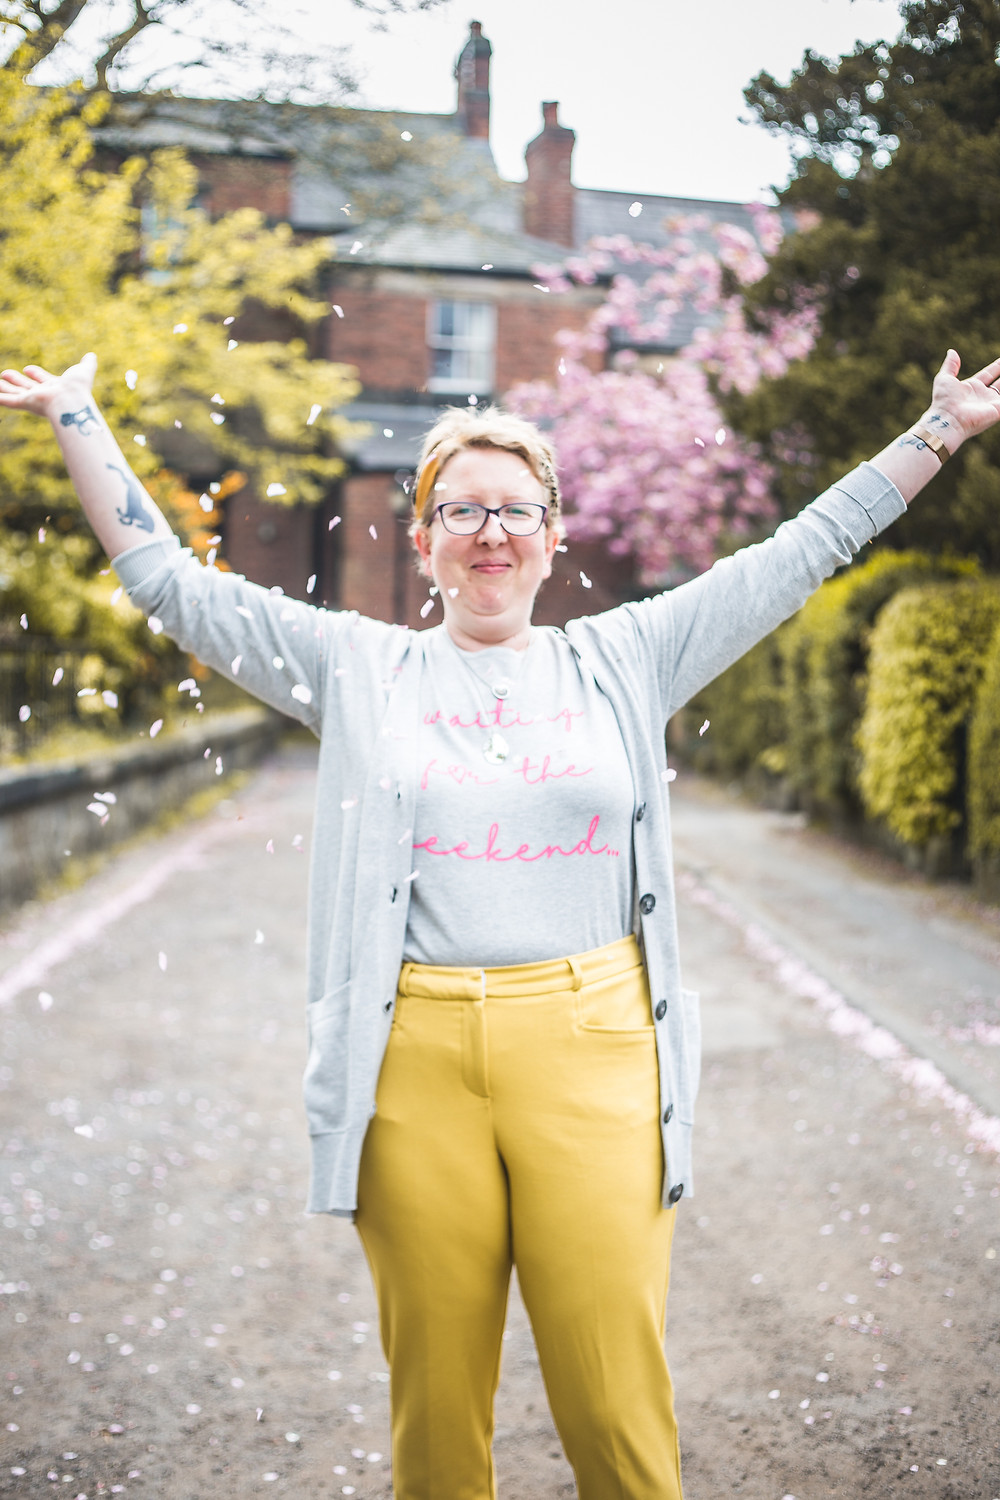 Sarah is facing the camera, smiling, with her arms wide open. She has thrown blossom confetti towards the camera. She is wearing yellow trousers, a thin grey jumper with pink writing on it and a grey cardigan over the top.